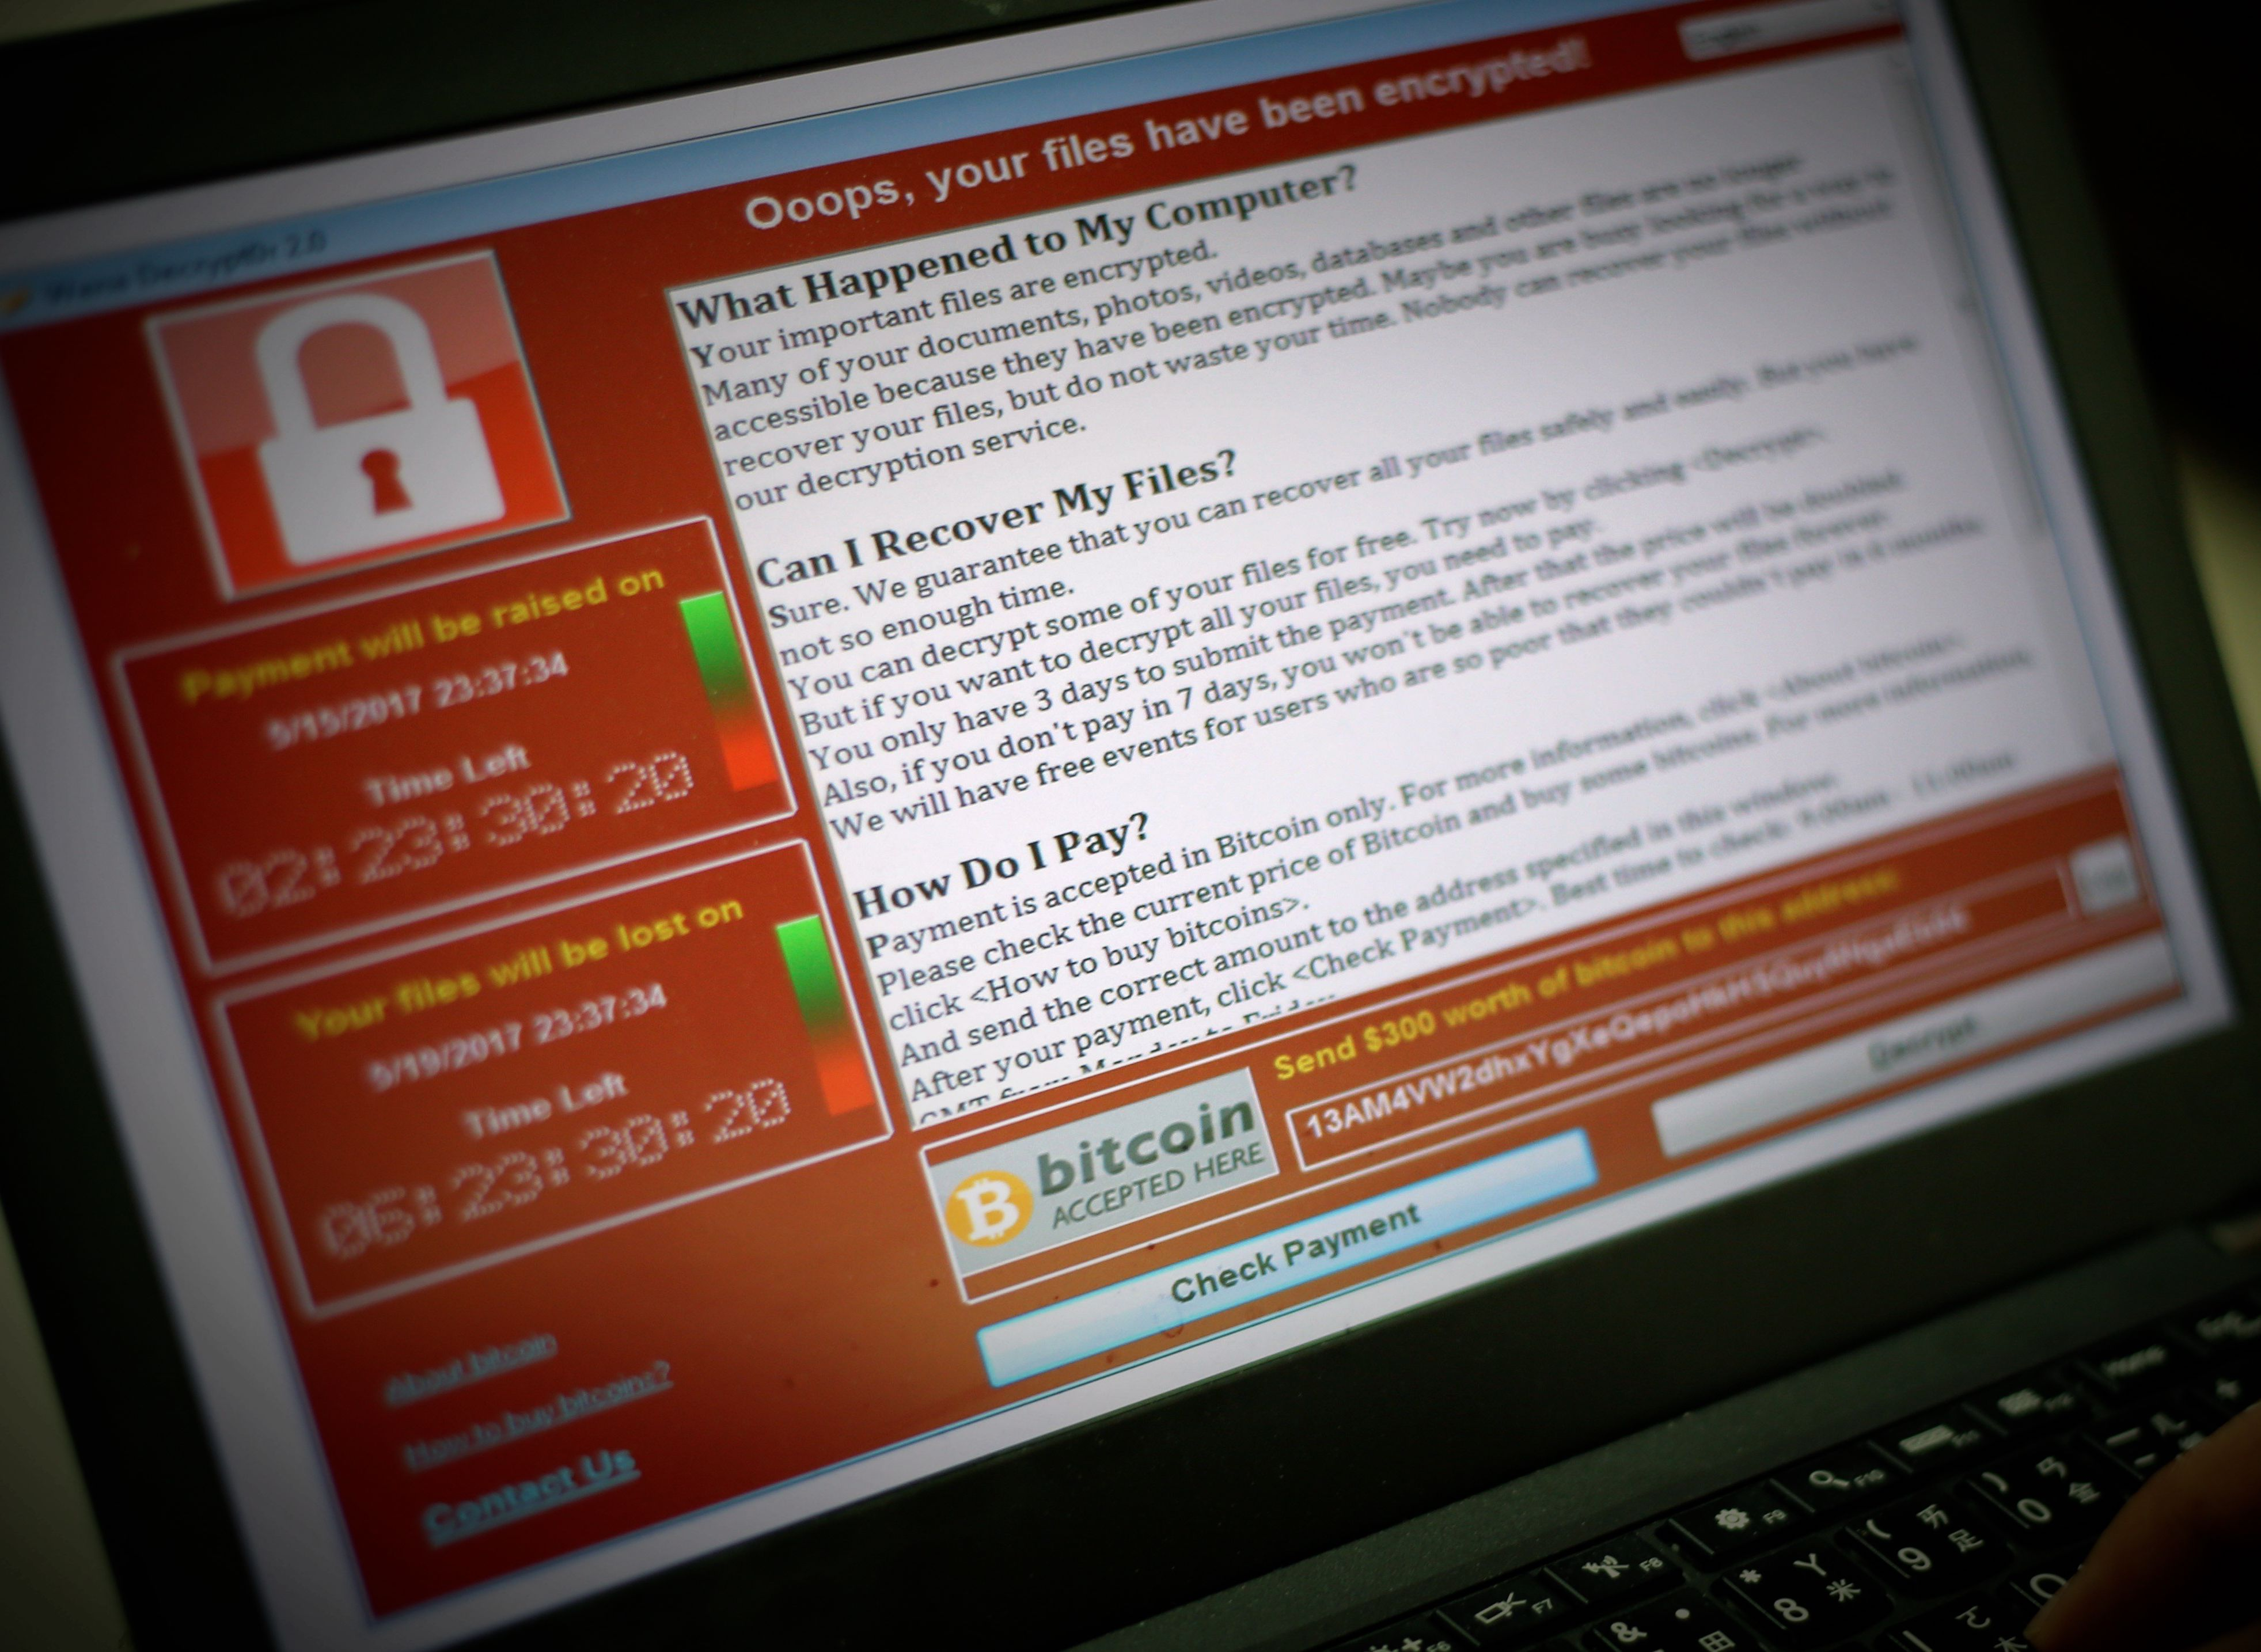 Two years after WannaCry, a million computers remain at risk